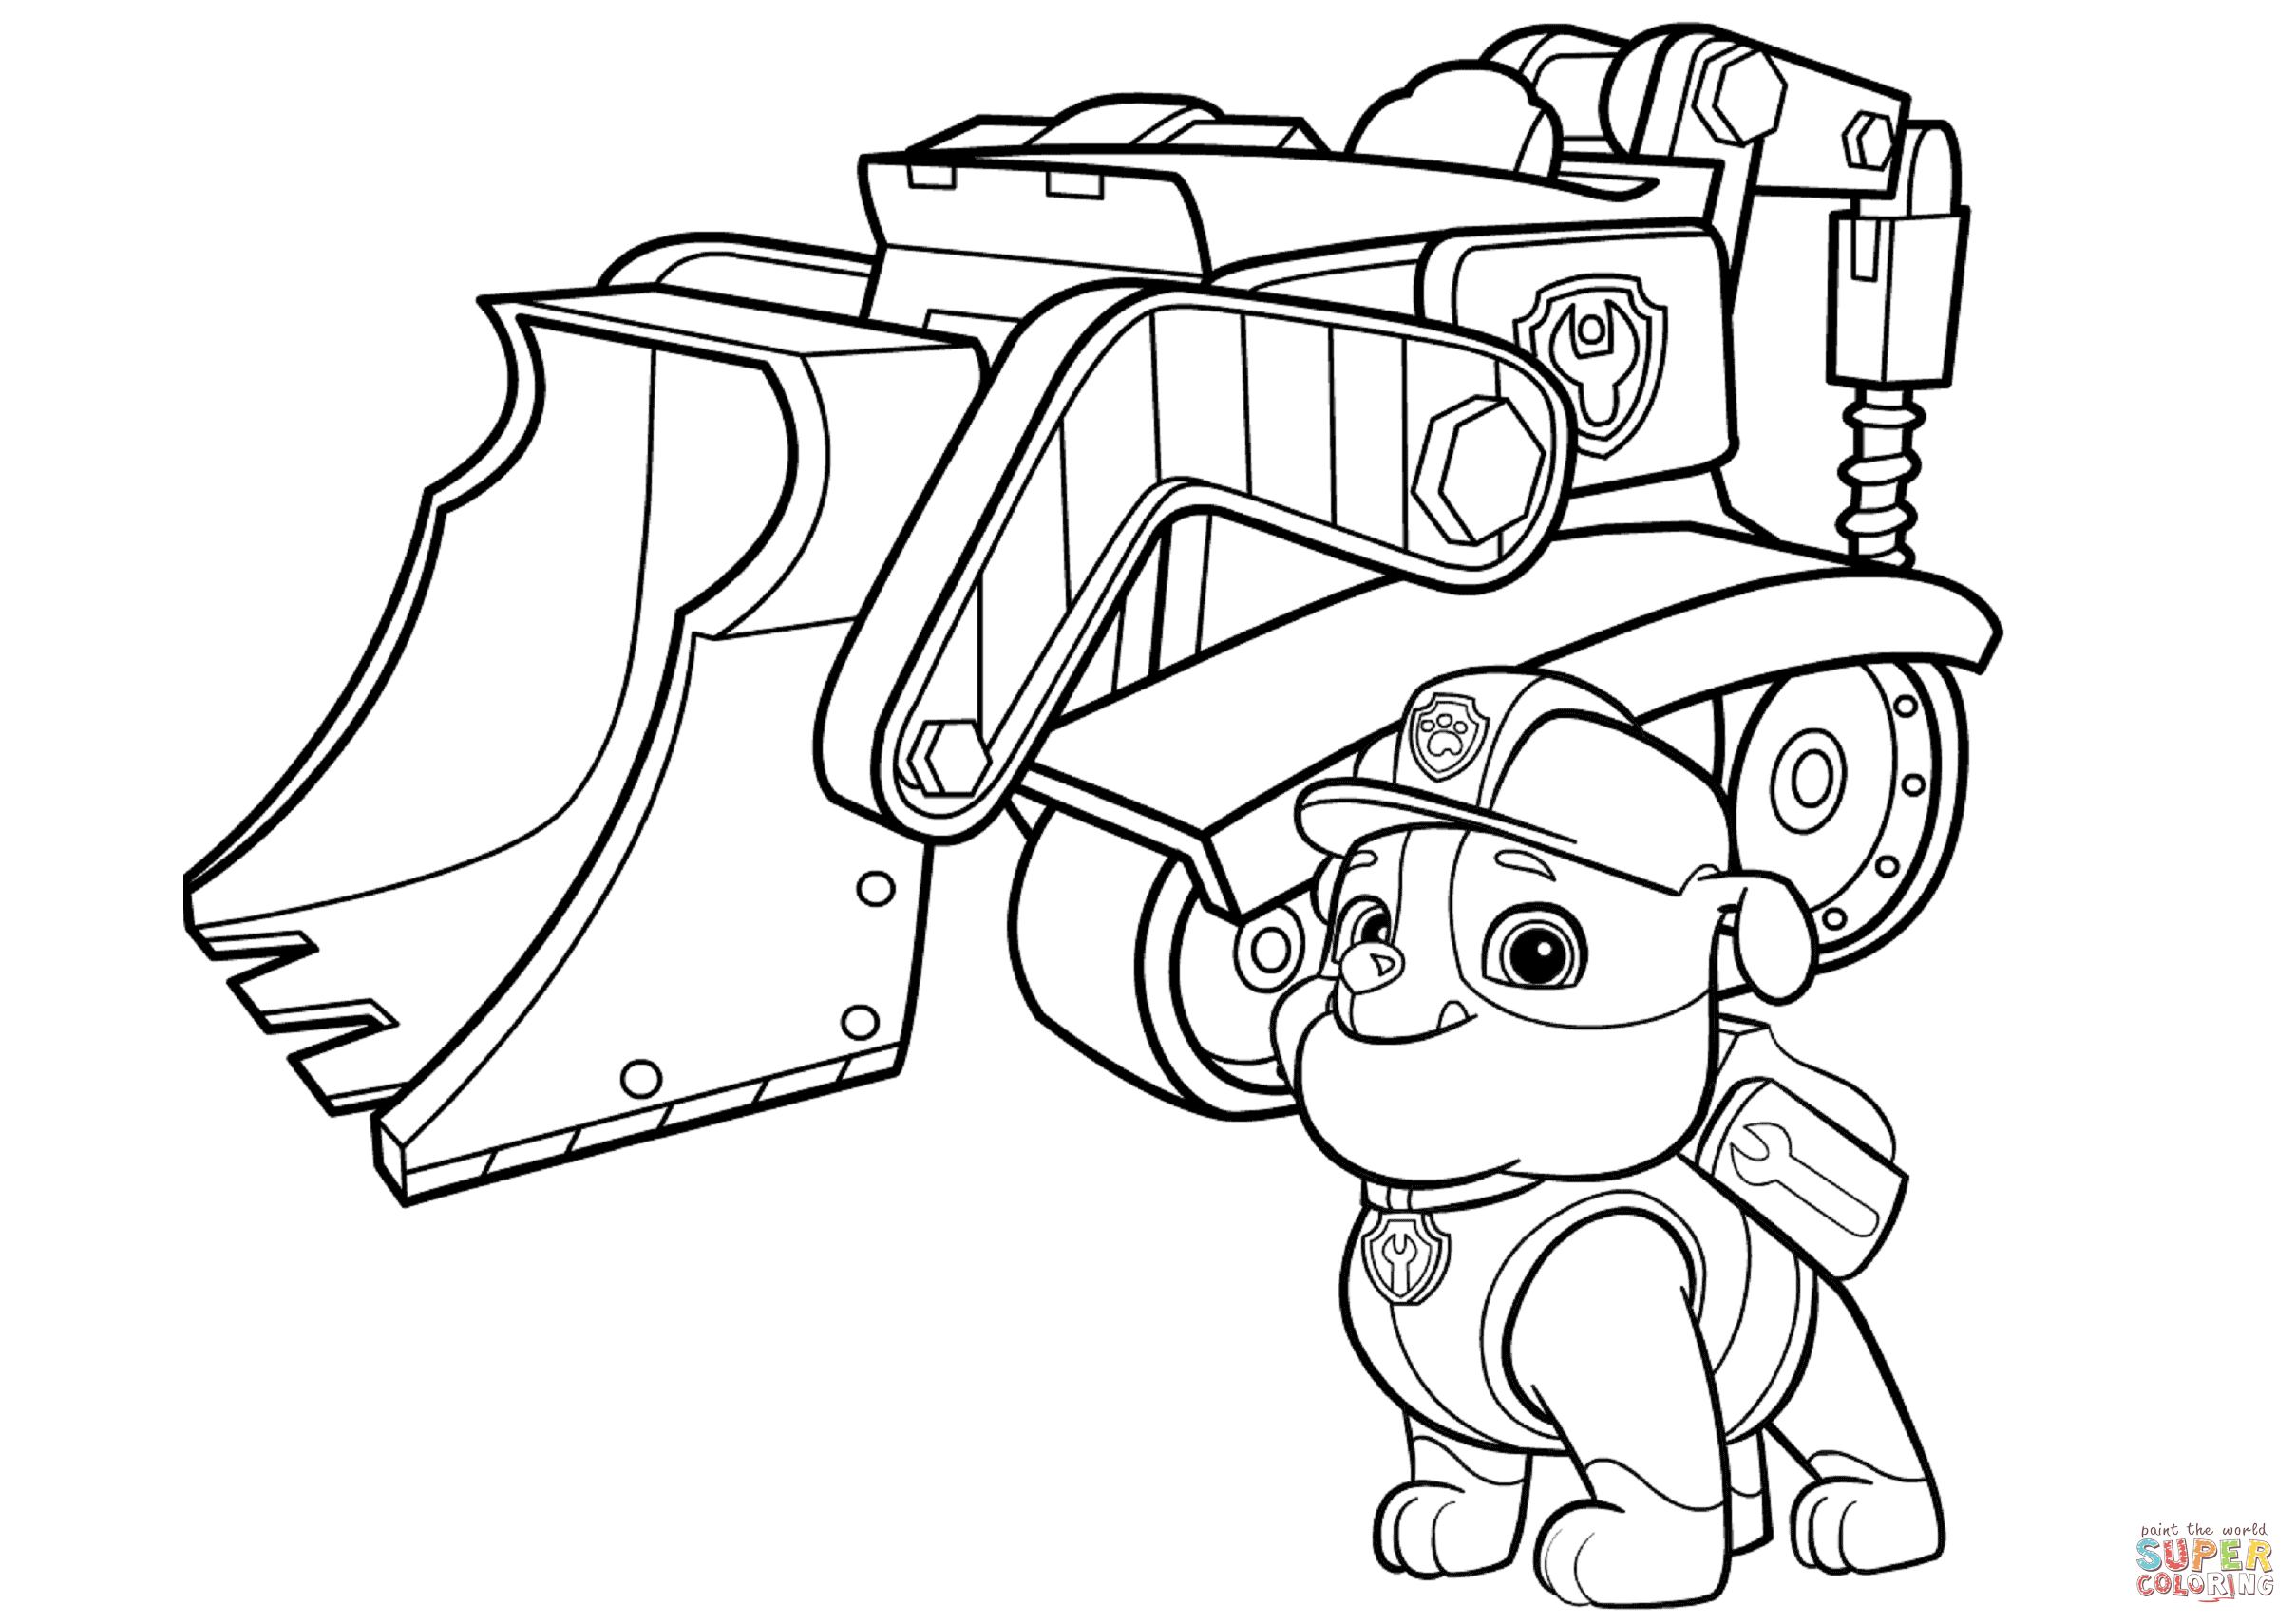 2417x1709 limited rubble paw patrol coloring page bulldo